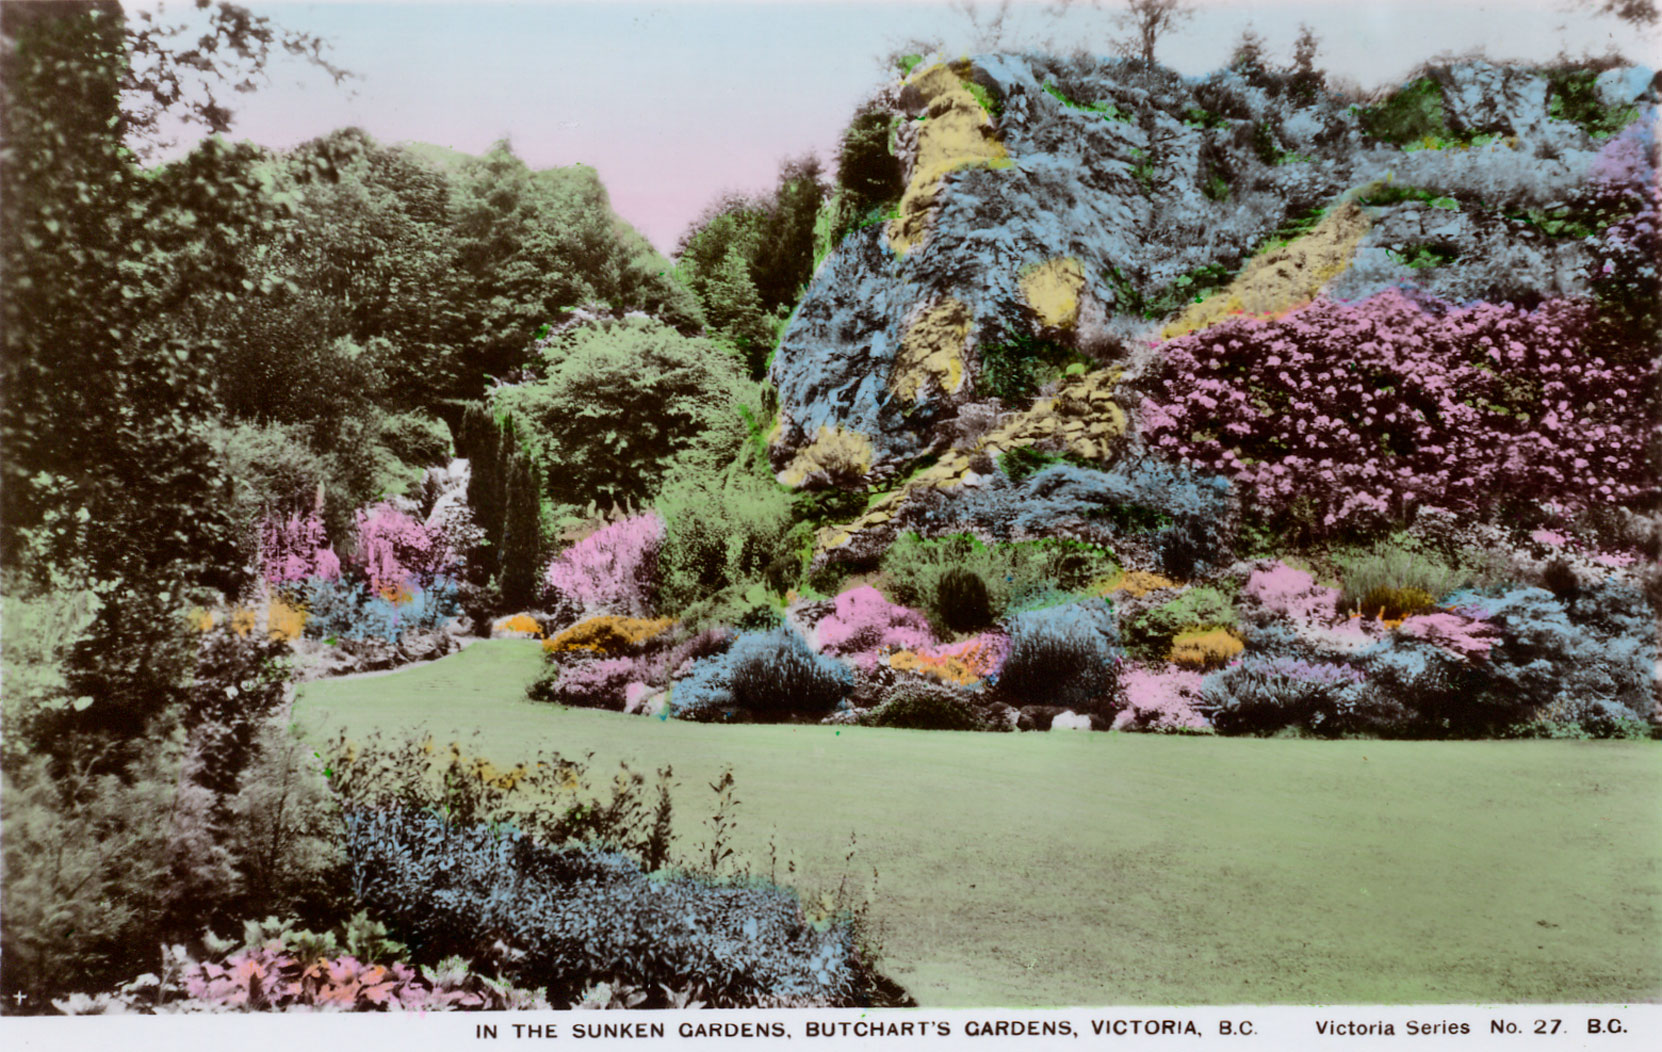 Postcard showing the Sunken Garden Mound, circa 1925-1930. (Author's collection)